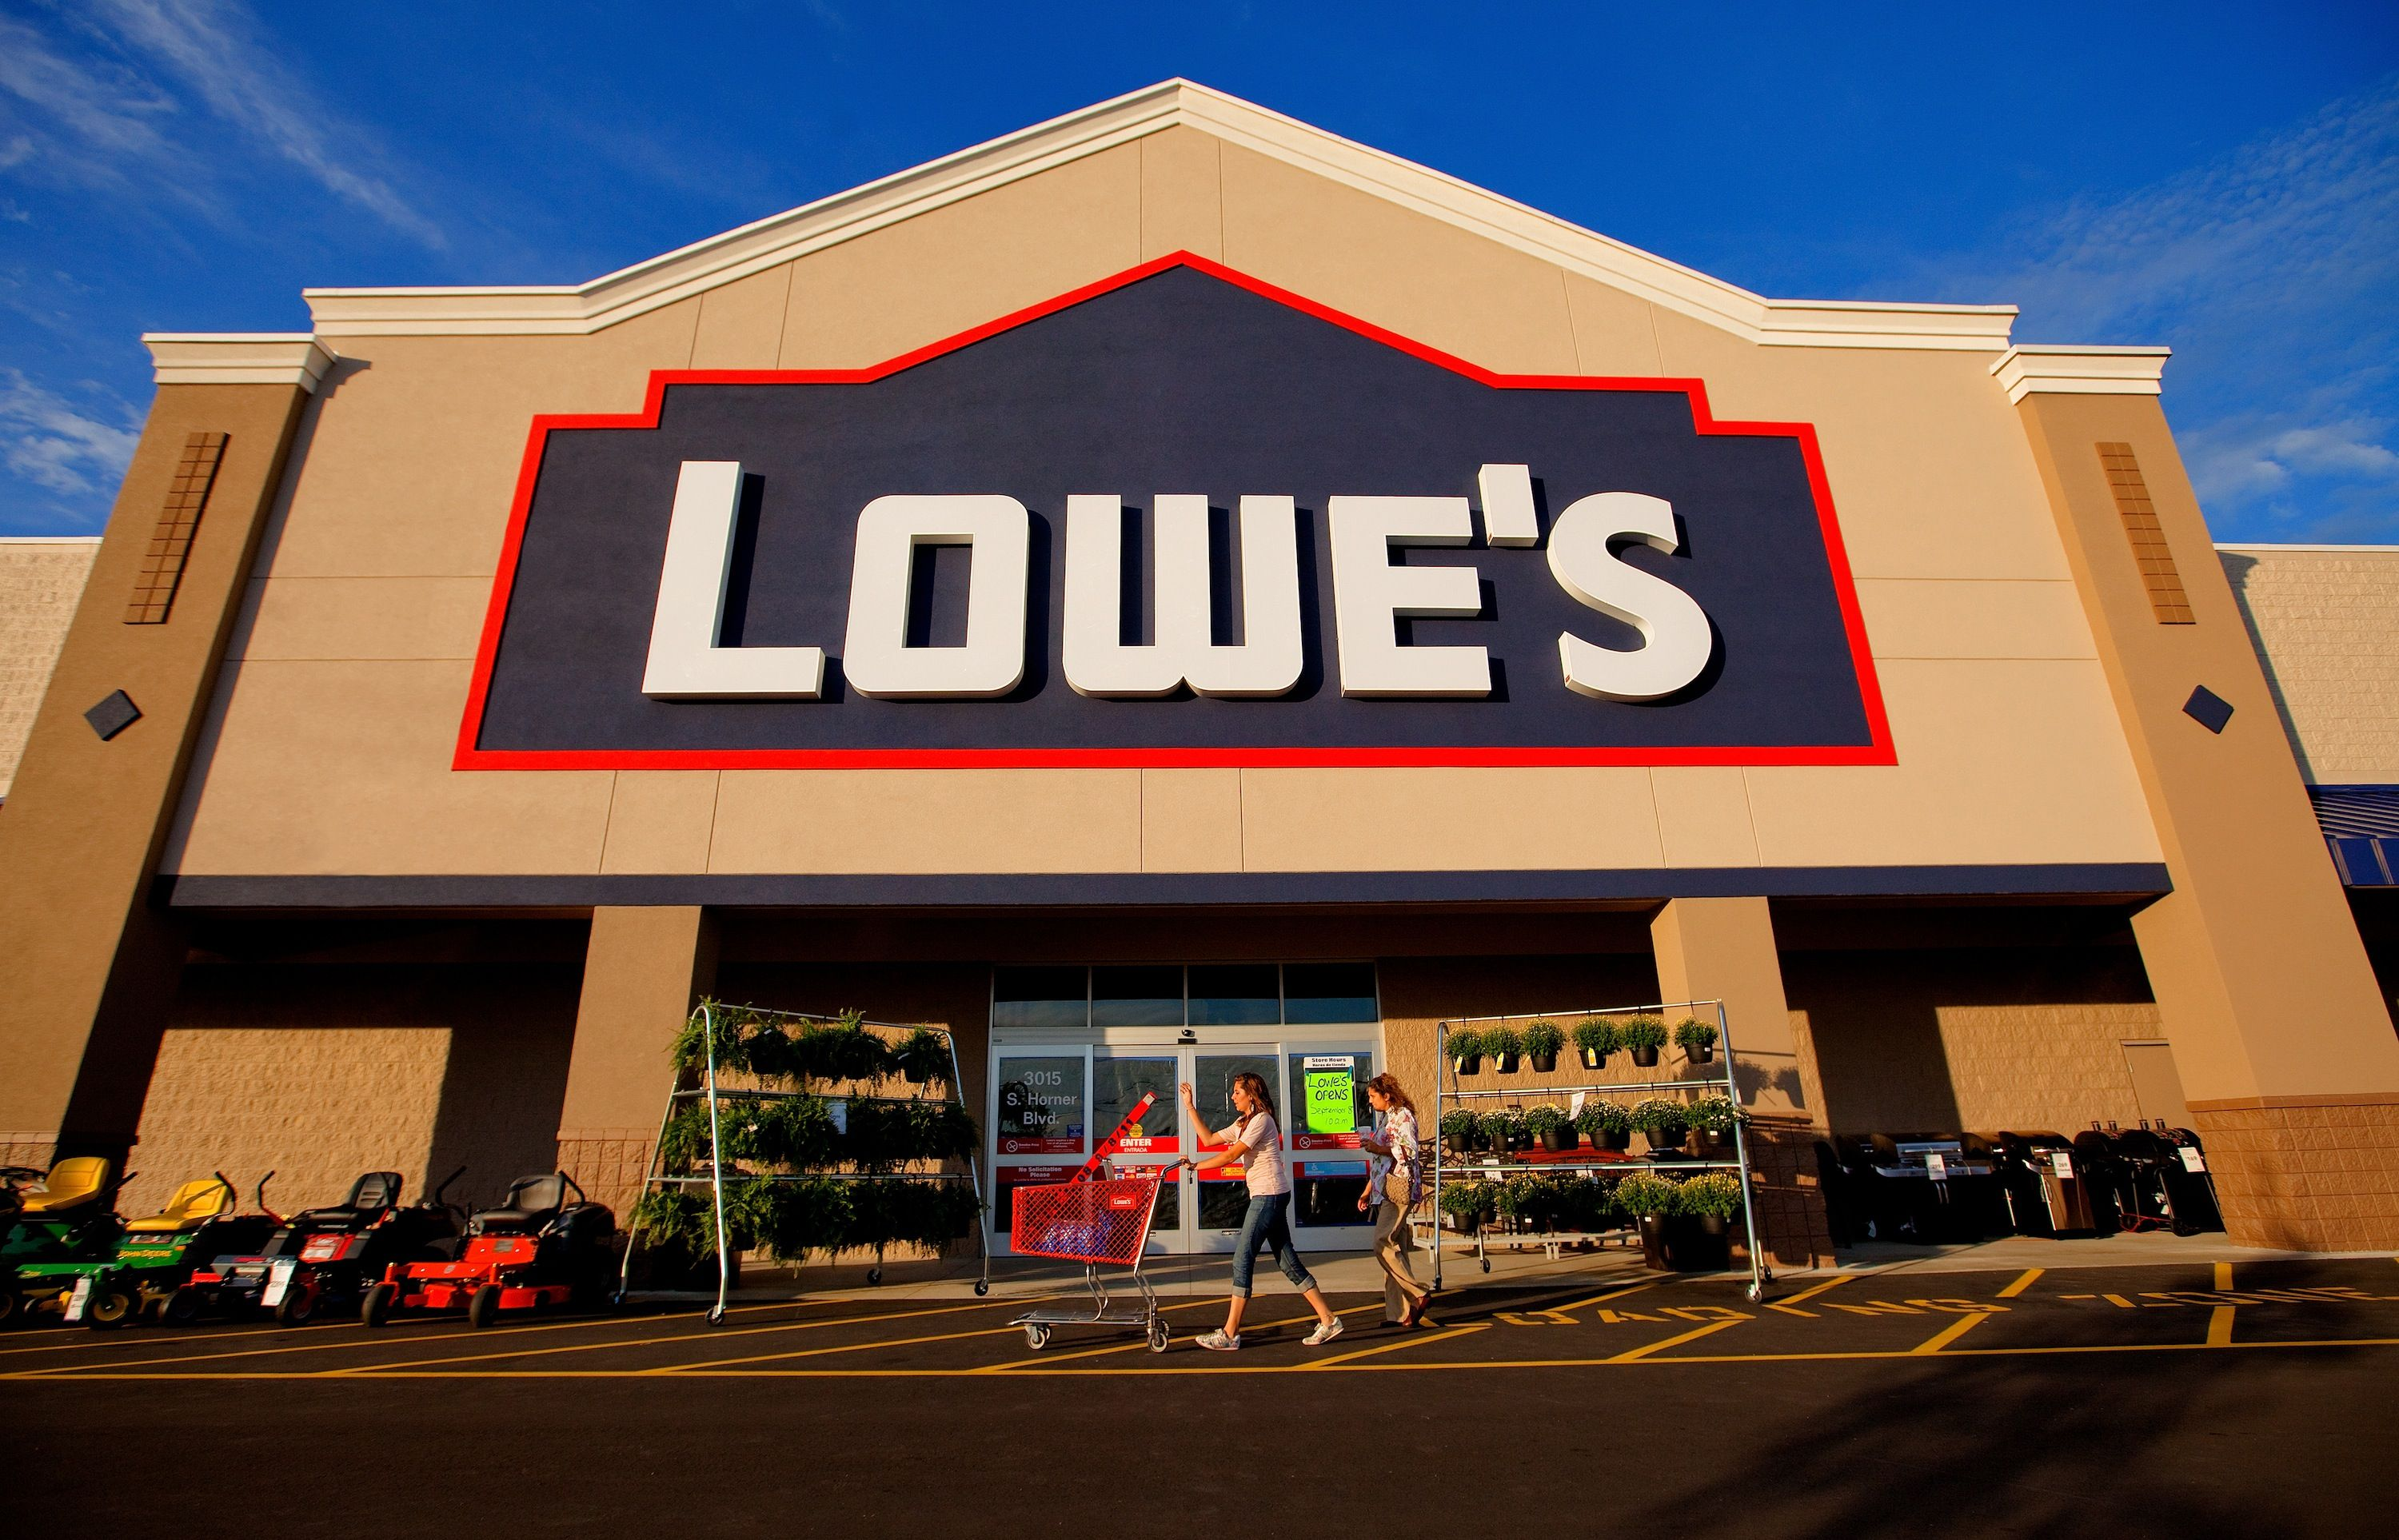 Affordable Acceptable Quality Good Range Of Options So Of Course I M Going To Mention It Lowes Coupon Code Lowes Coupon Lowes Hardware